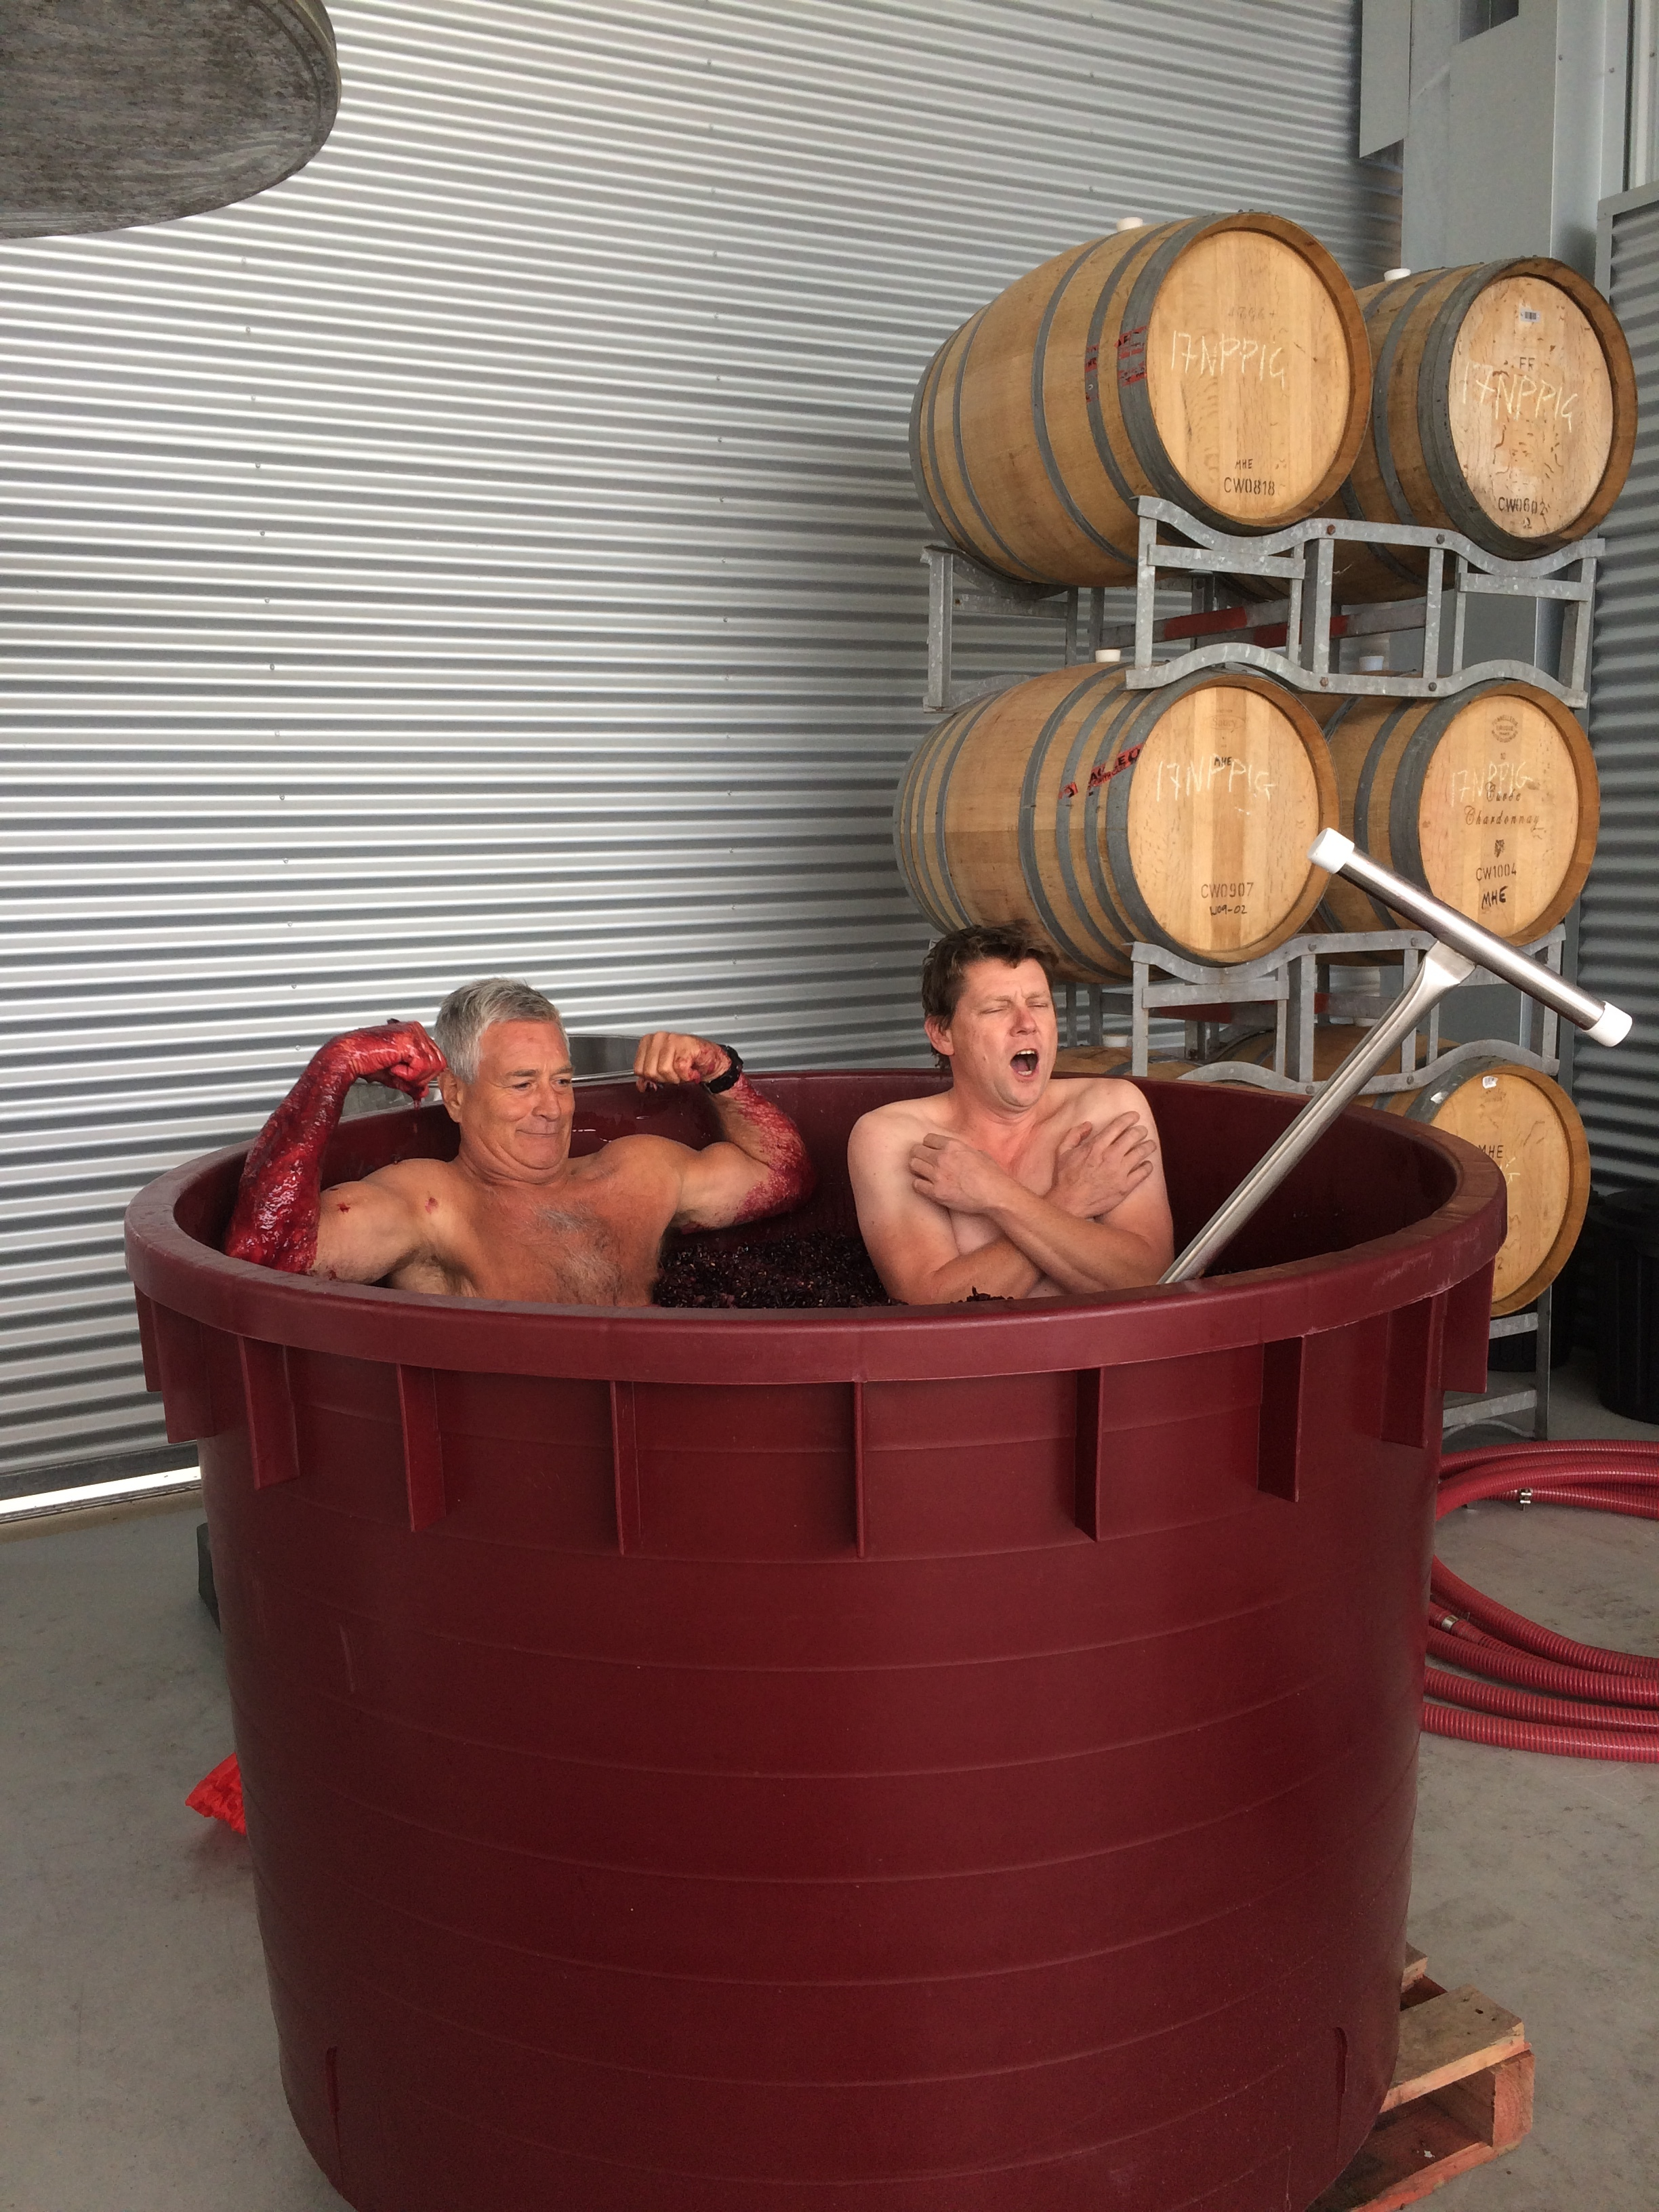 Post lunch hi-jinks in the Cabernet ferment